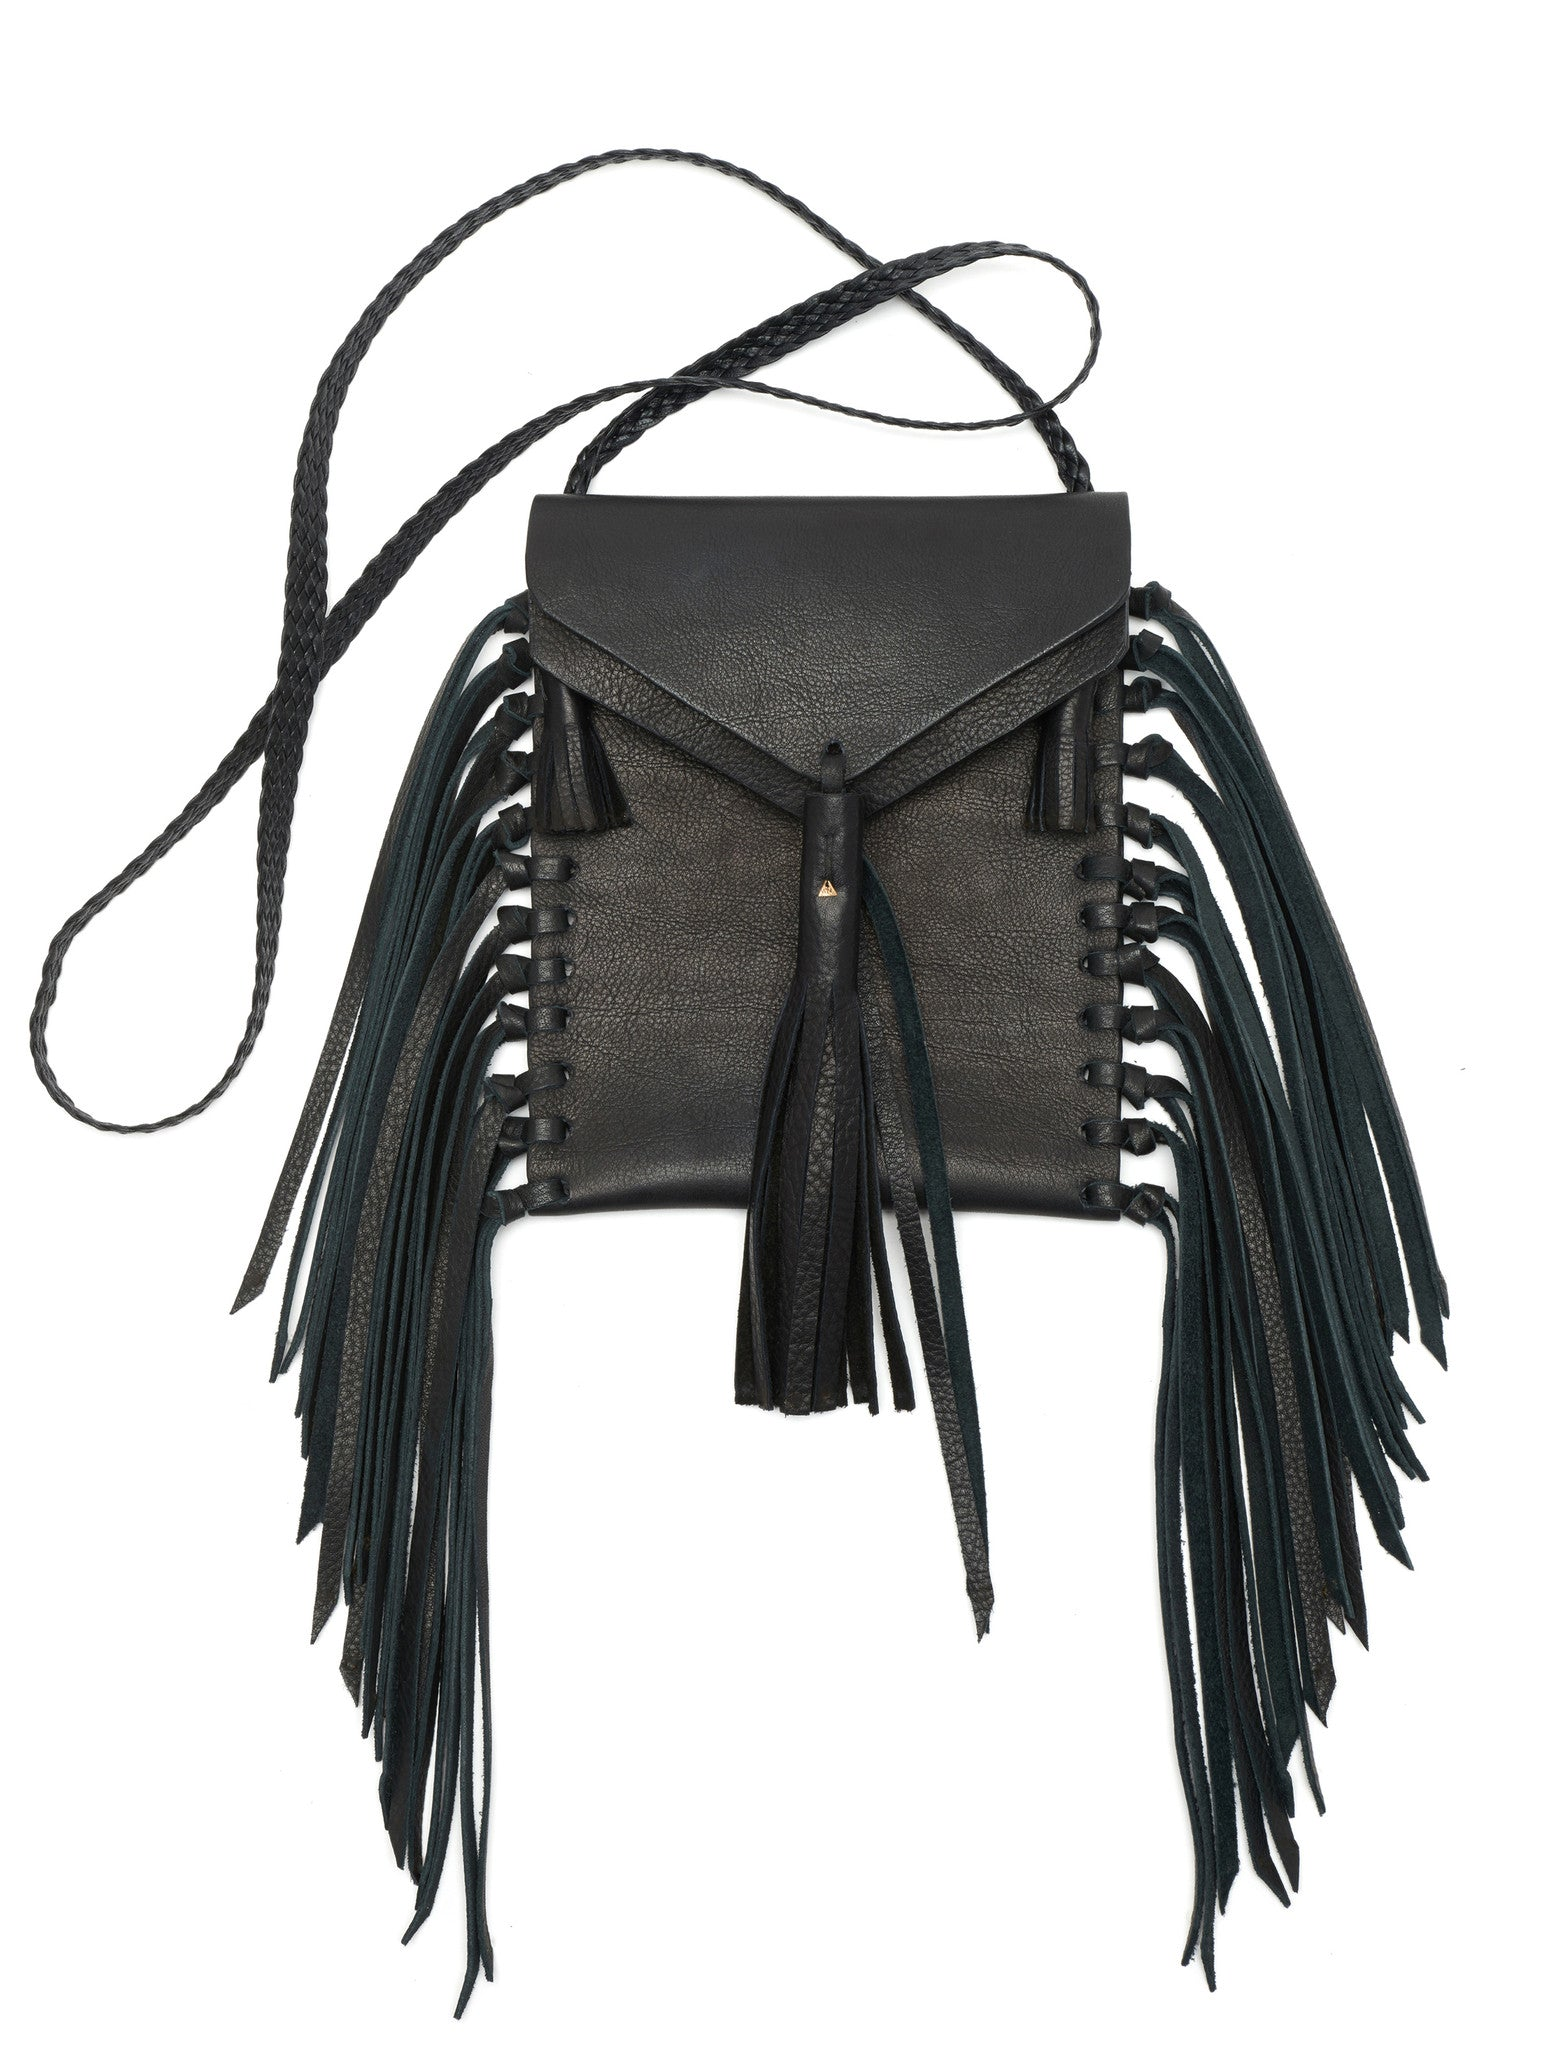 Black Tobacco Bag Wendy Nichol Leather Handbag Crossbody Purse Designer Handmade in NYC Fringe Tassel Tassels Hippie Simple